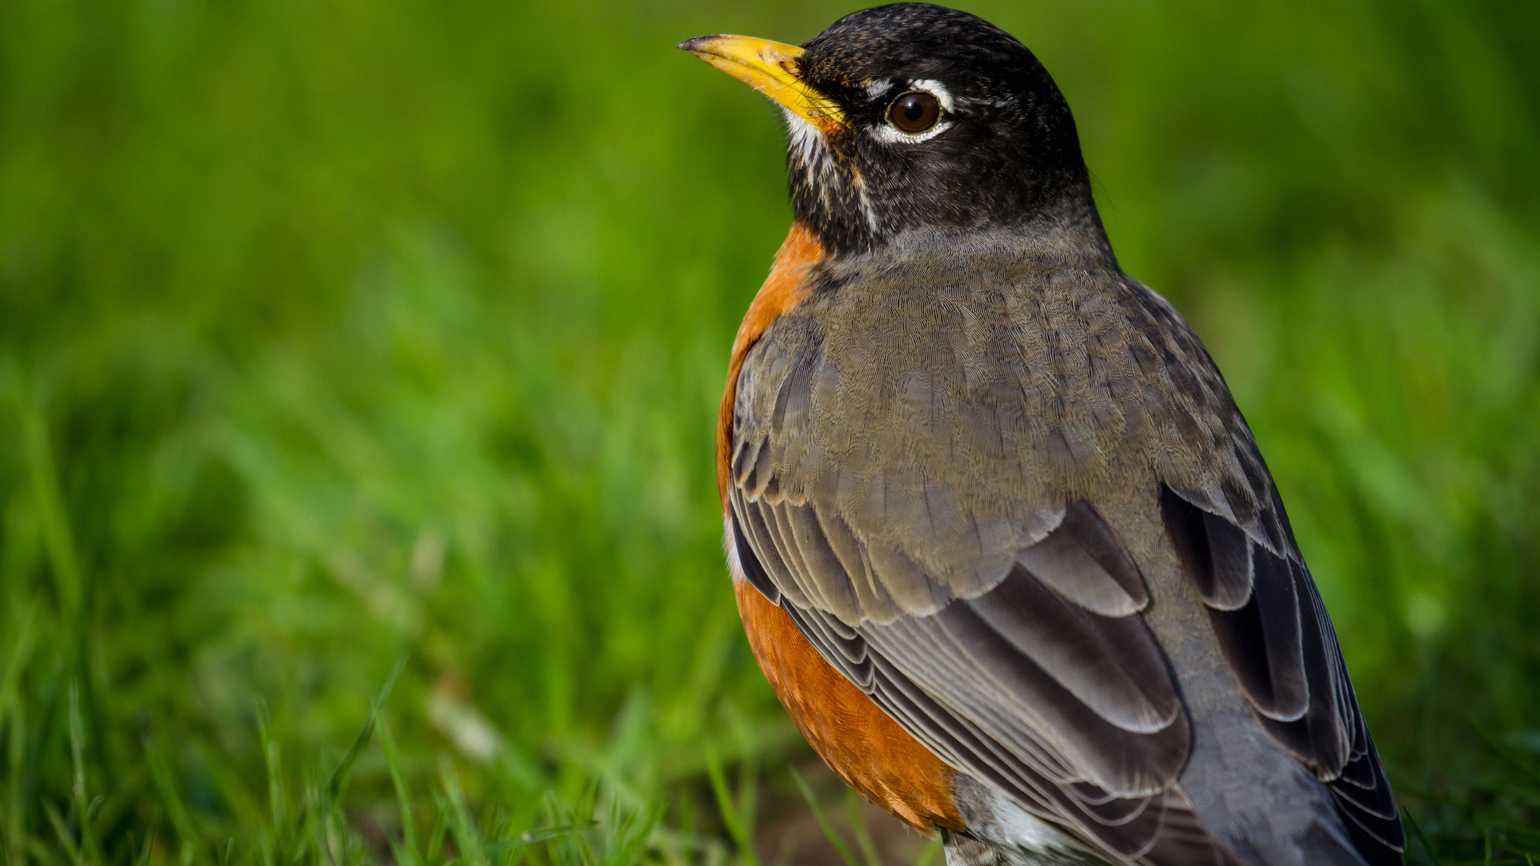 A robin in the grass in a park in Seattle